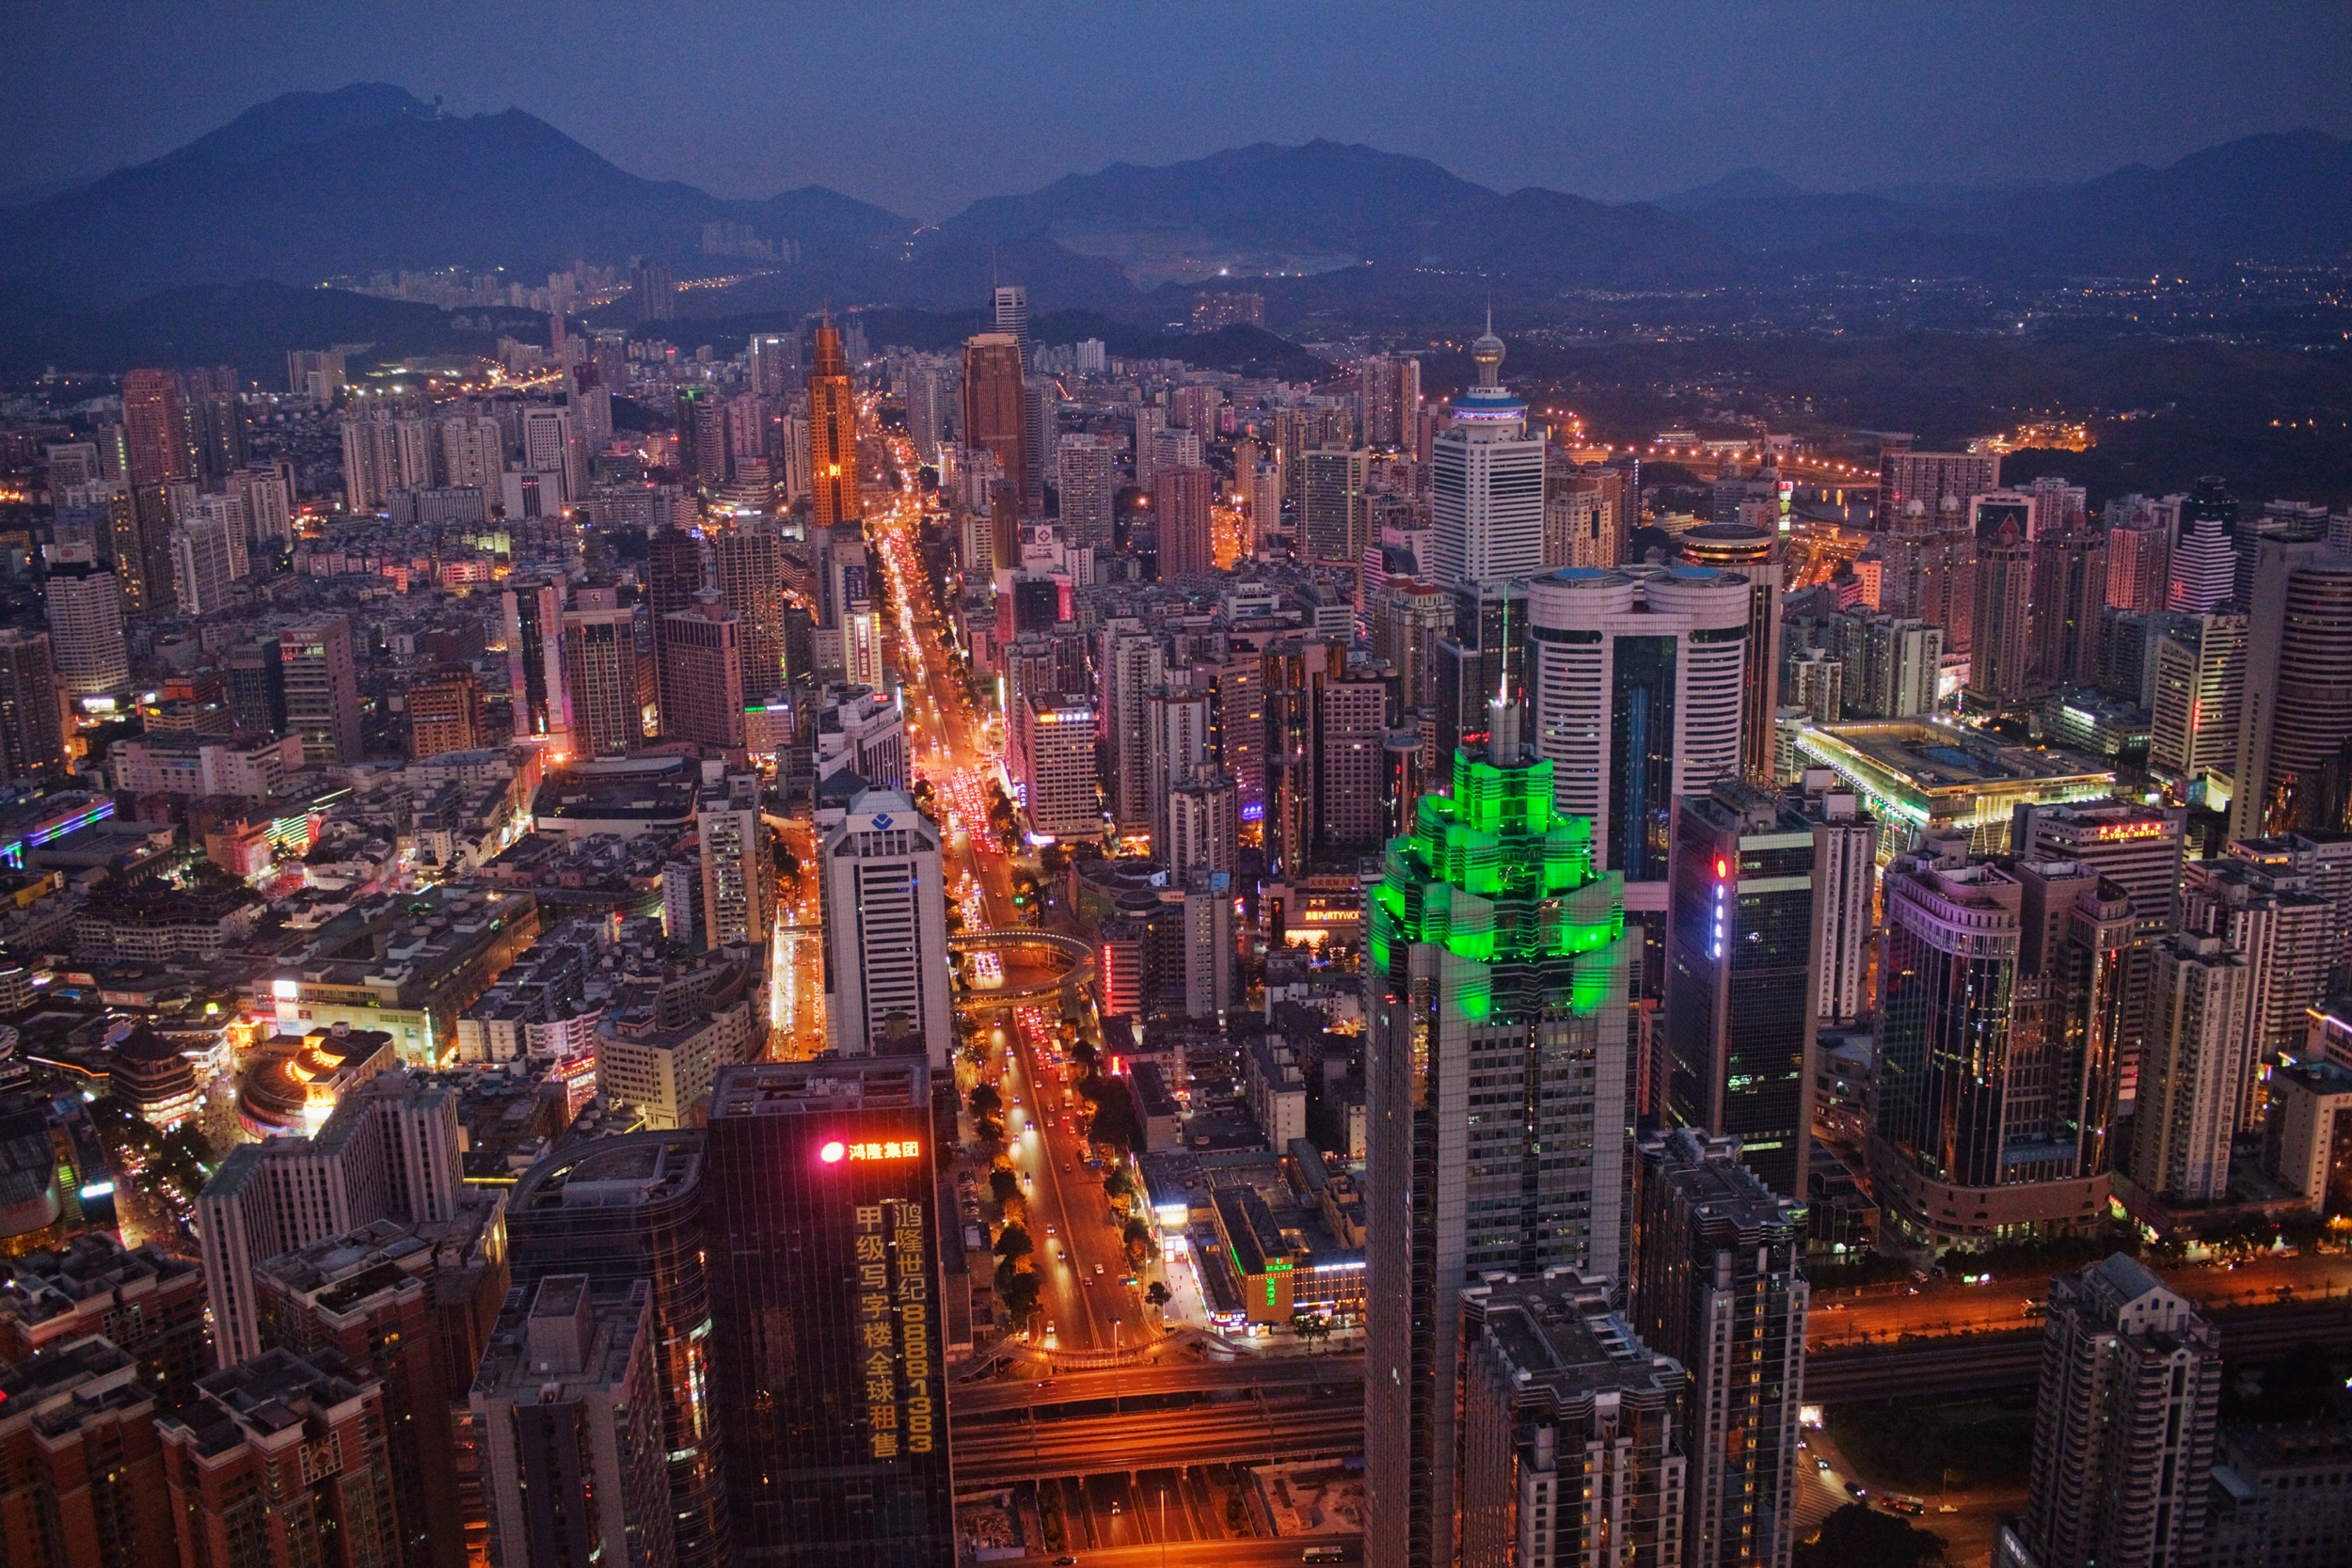 Beijing Launches Plans for Shenzhen to Become Top Financial Center, in Apparent Bid to Replace Hong Kong